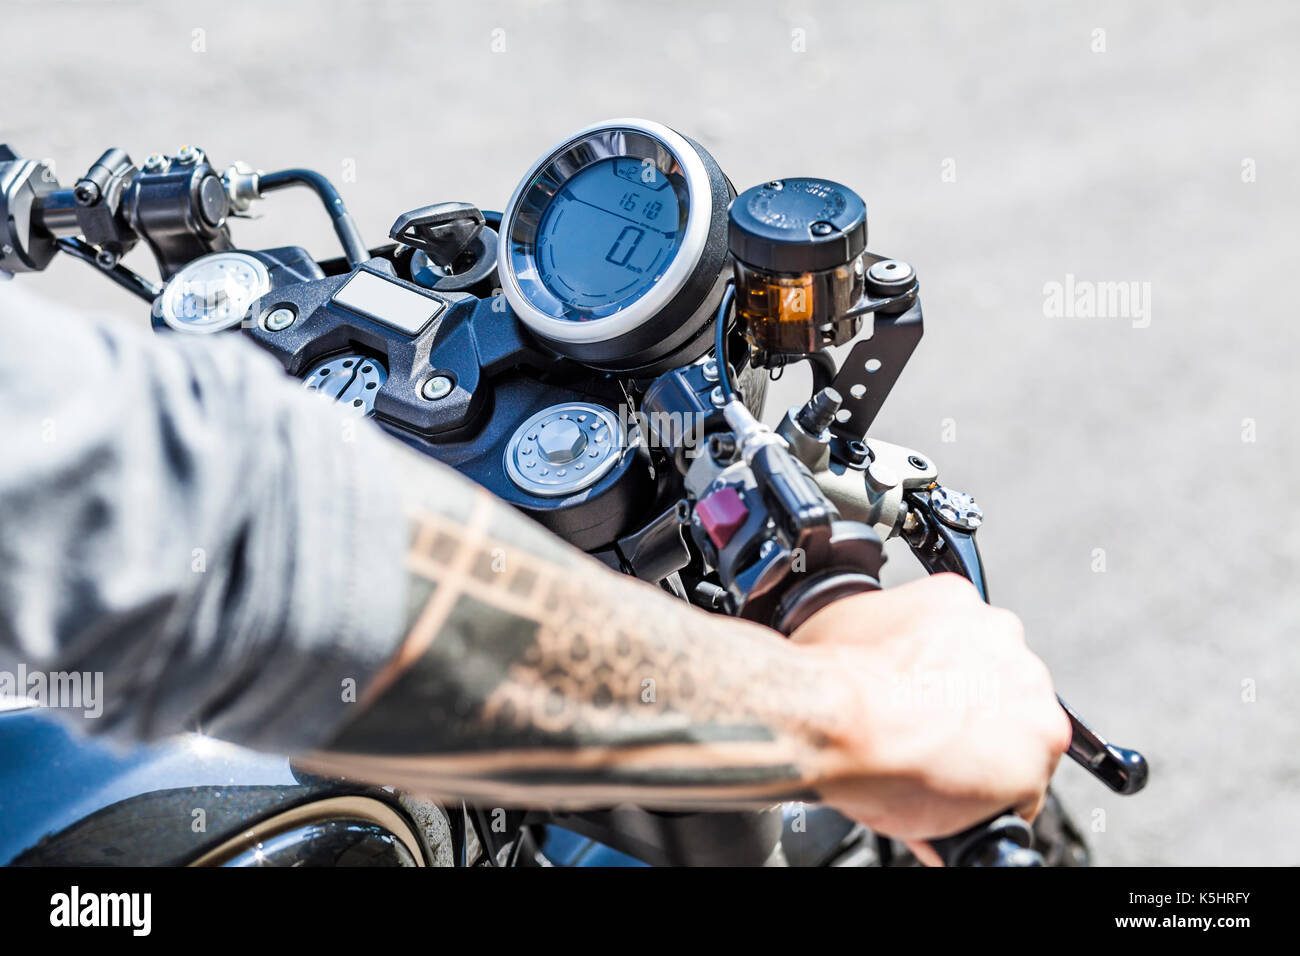 Cool looking tattoos on arms of motorcycle rider on custom made scrambler style cafe racer - Stock Image